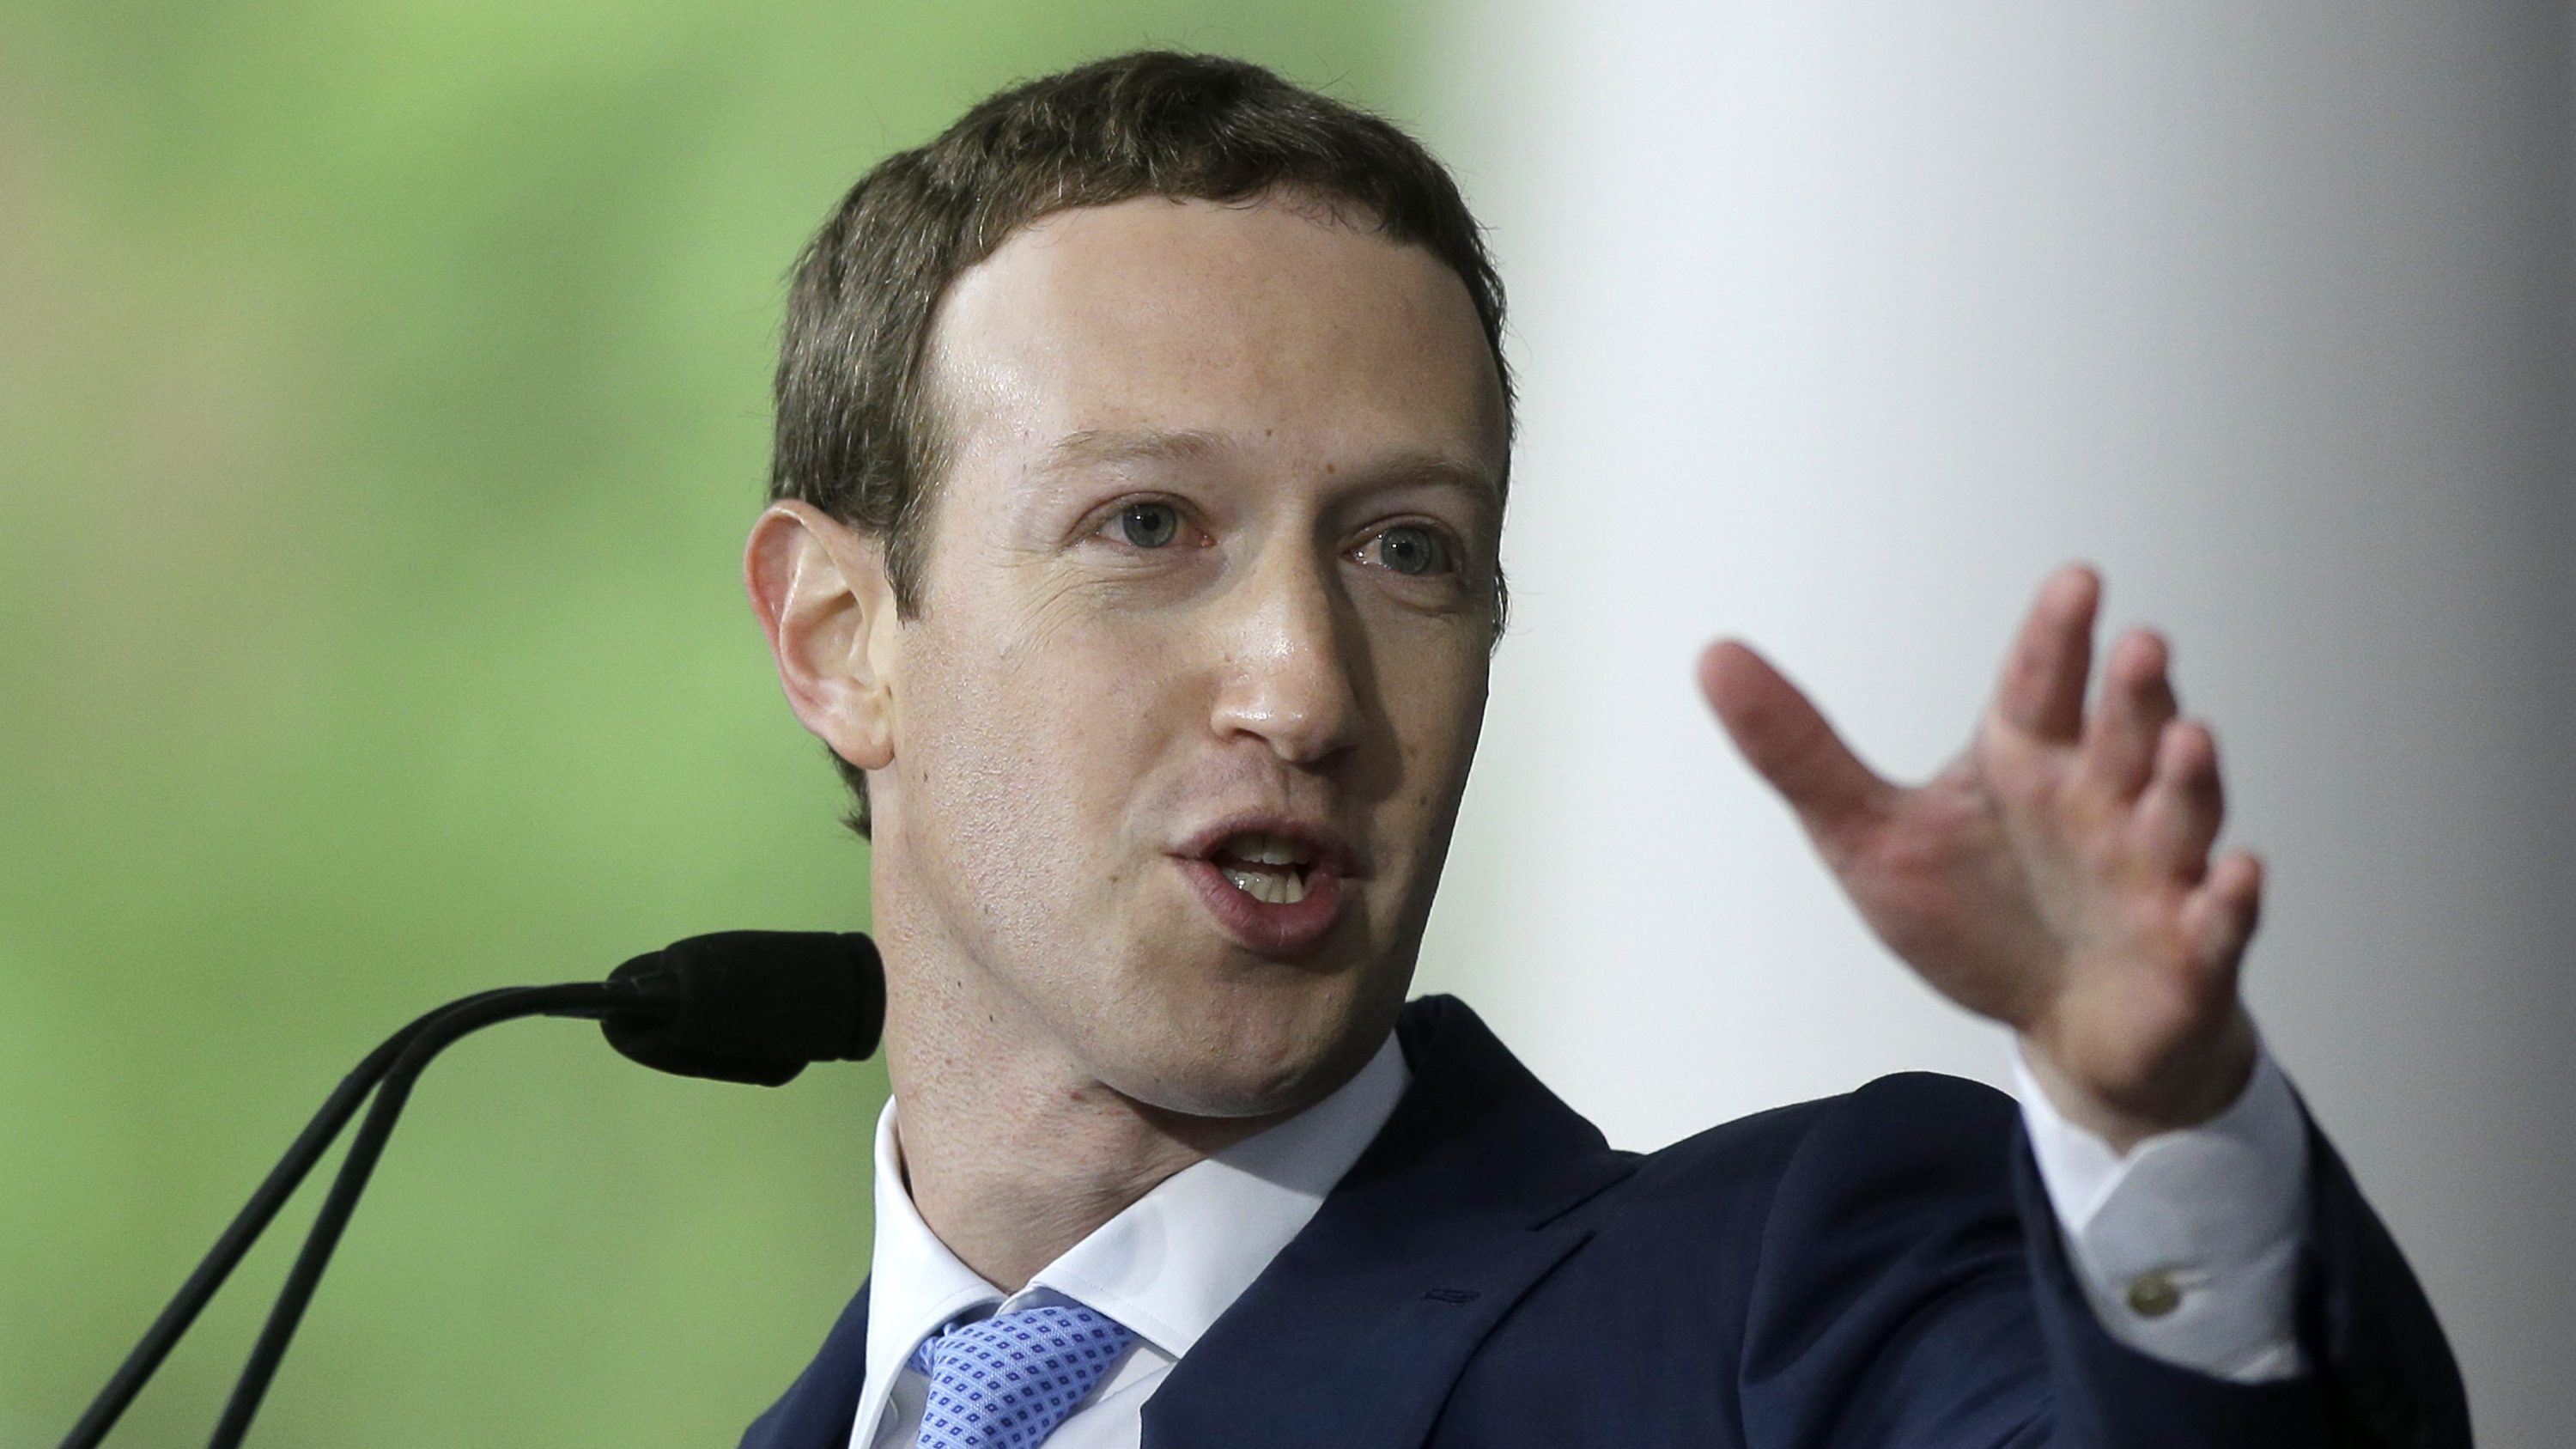 In this May 25, 2017, file photo, Facebook CEO and Harvard dropout Mark Zuckerberg delivers the commencement address at Harvard University commencement exercises in Cambridge, Mass. President Donald Trump's Interior Department prevented Glacier National Park's superintendent from accompanying Facebook founder Mark Zuckerberg on a recent park tour to save money, not to mute criticism over climate change, a spokeswoman for the agency said Thursday, July 20.